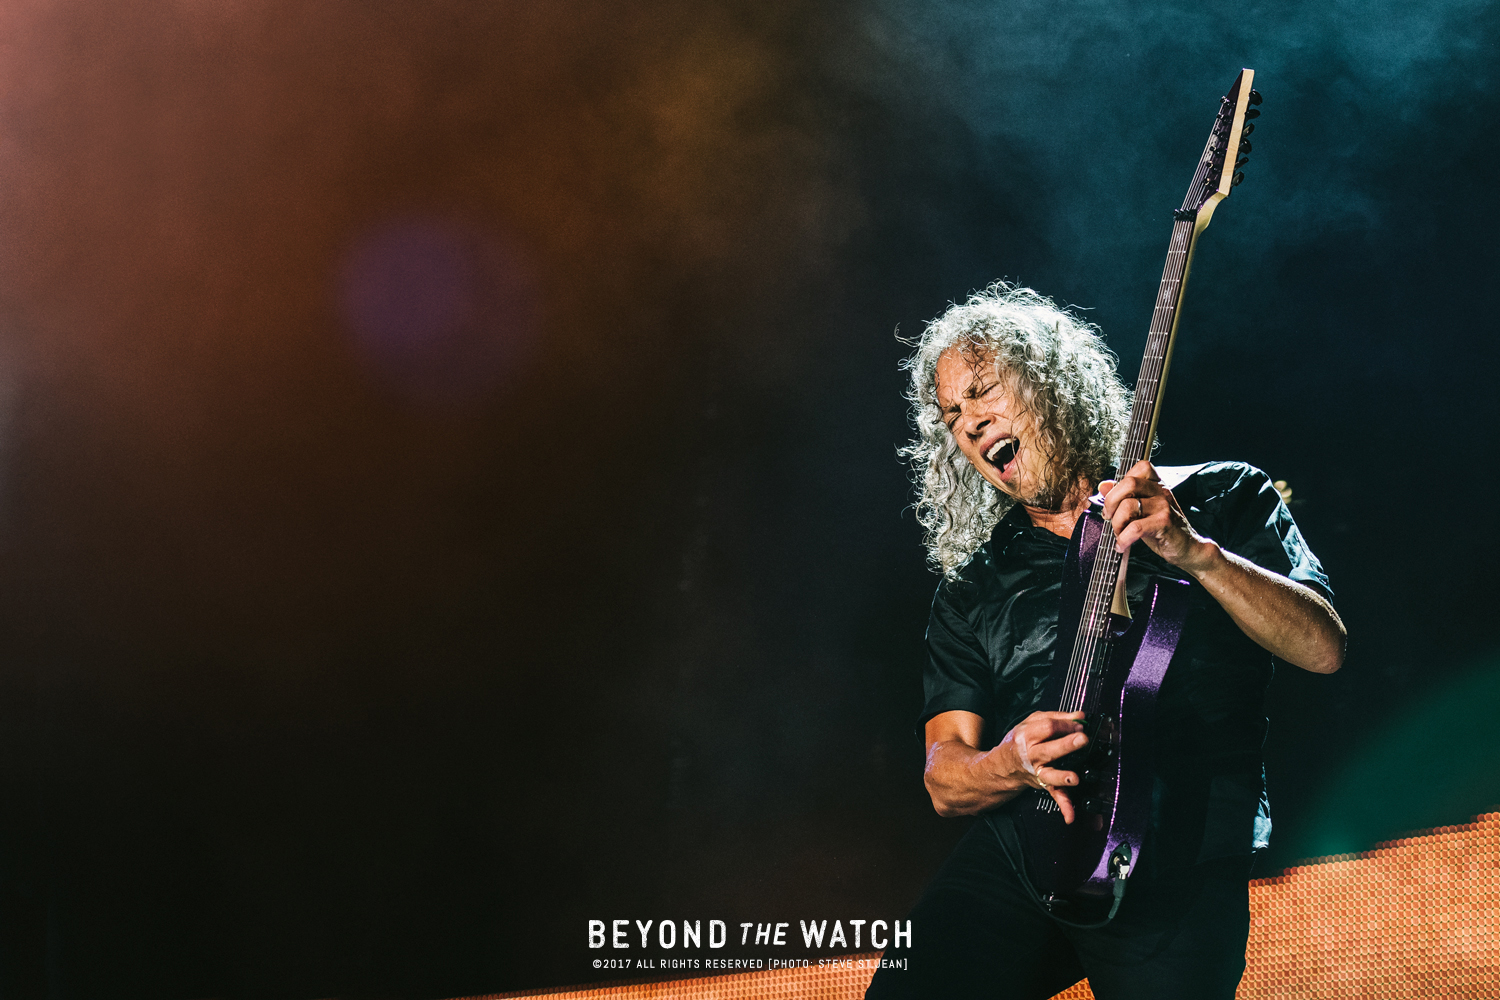 Second favourite shot of the night. Hammett is amazing to photograph.